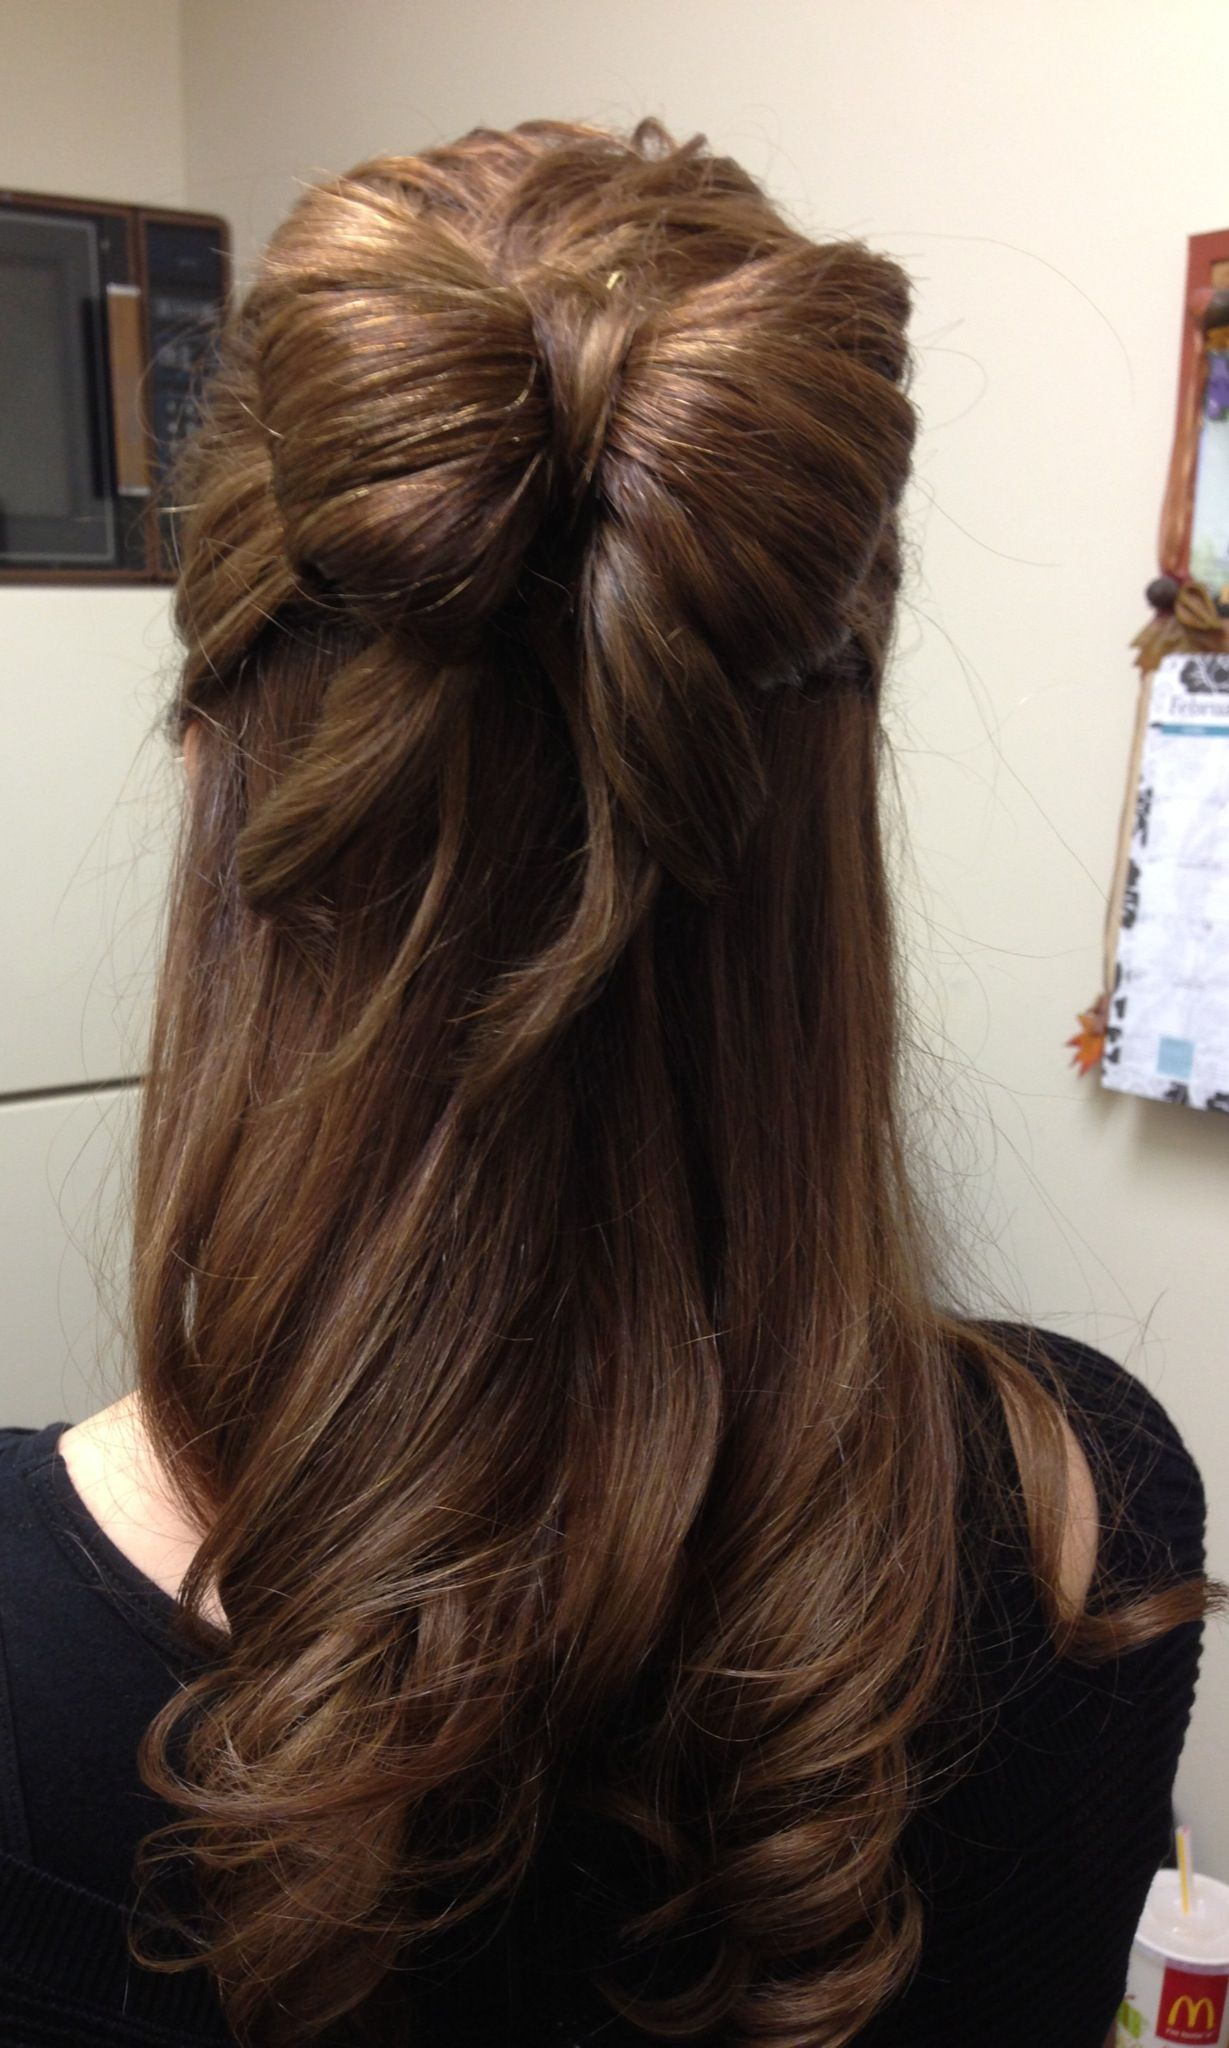 Cute hair bow style made by me Hairstyles Pinterest Hair